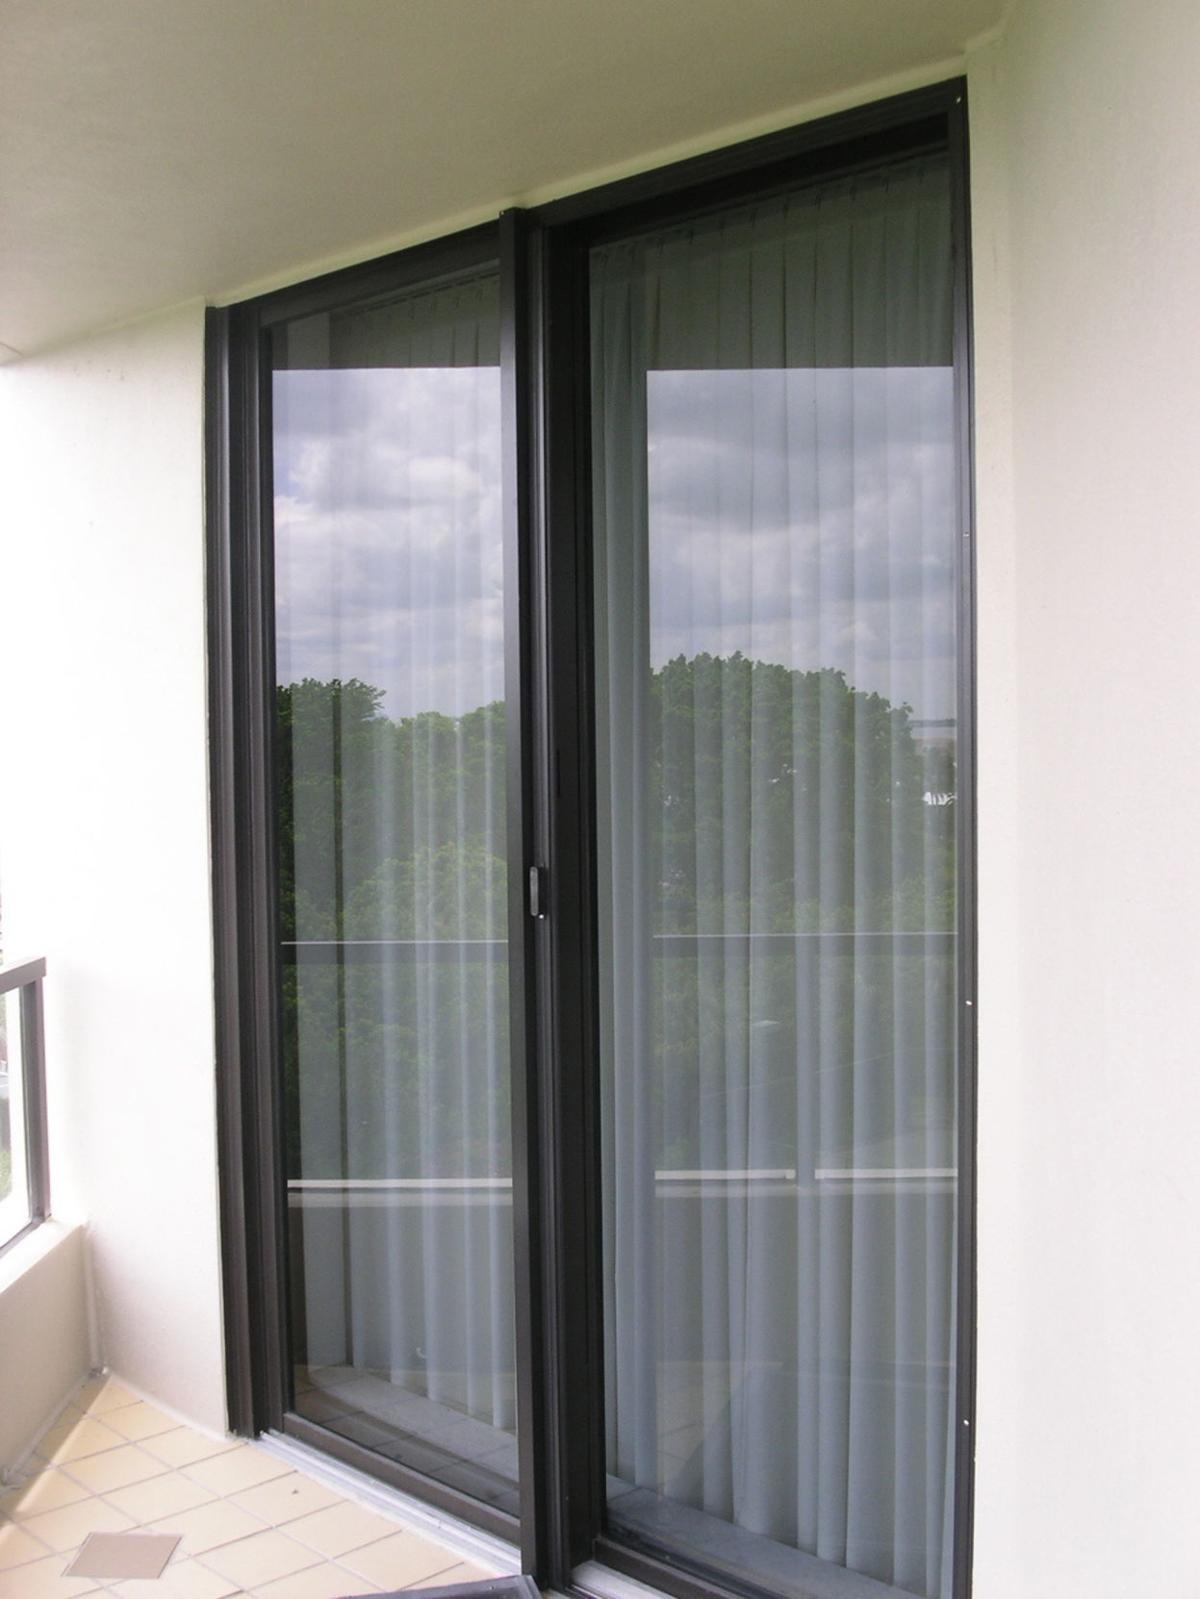 James dulley retractable screen best alternative to for Sliding screen door frame